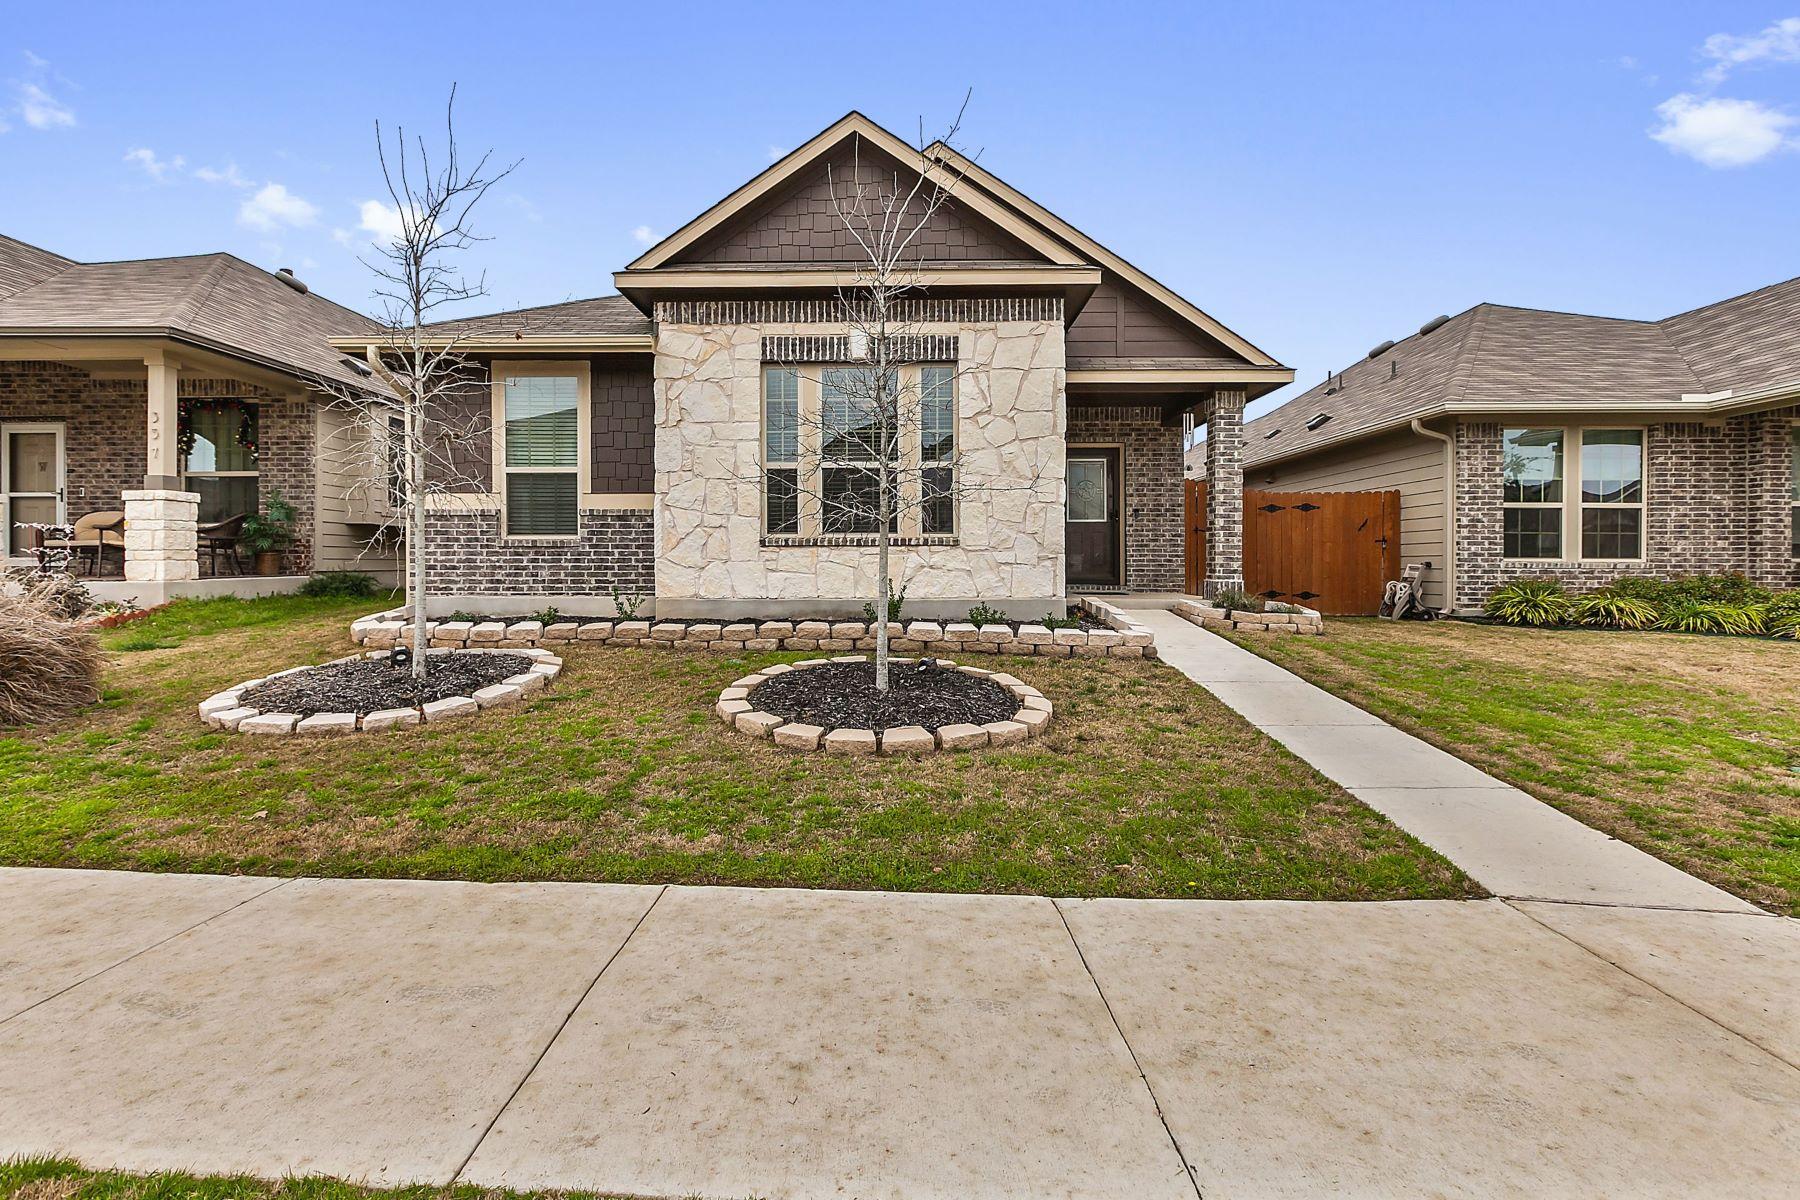 Single Family Homes for Sale at 353 South Brook Drive, Leander, TX 78641 353 South Brook Drive Leander, Texas 78641 United States